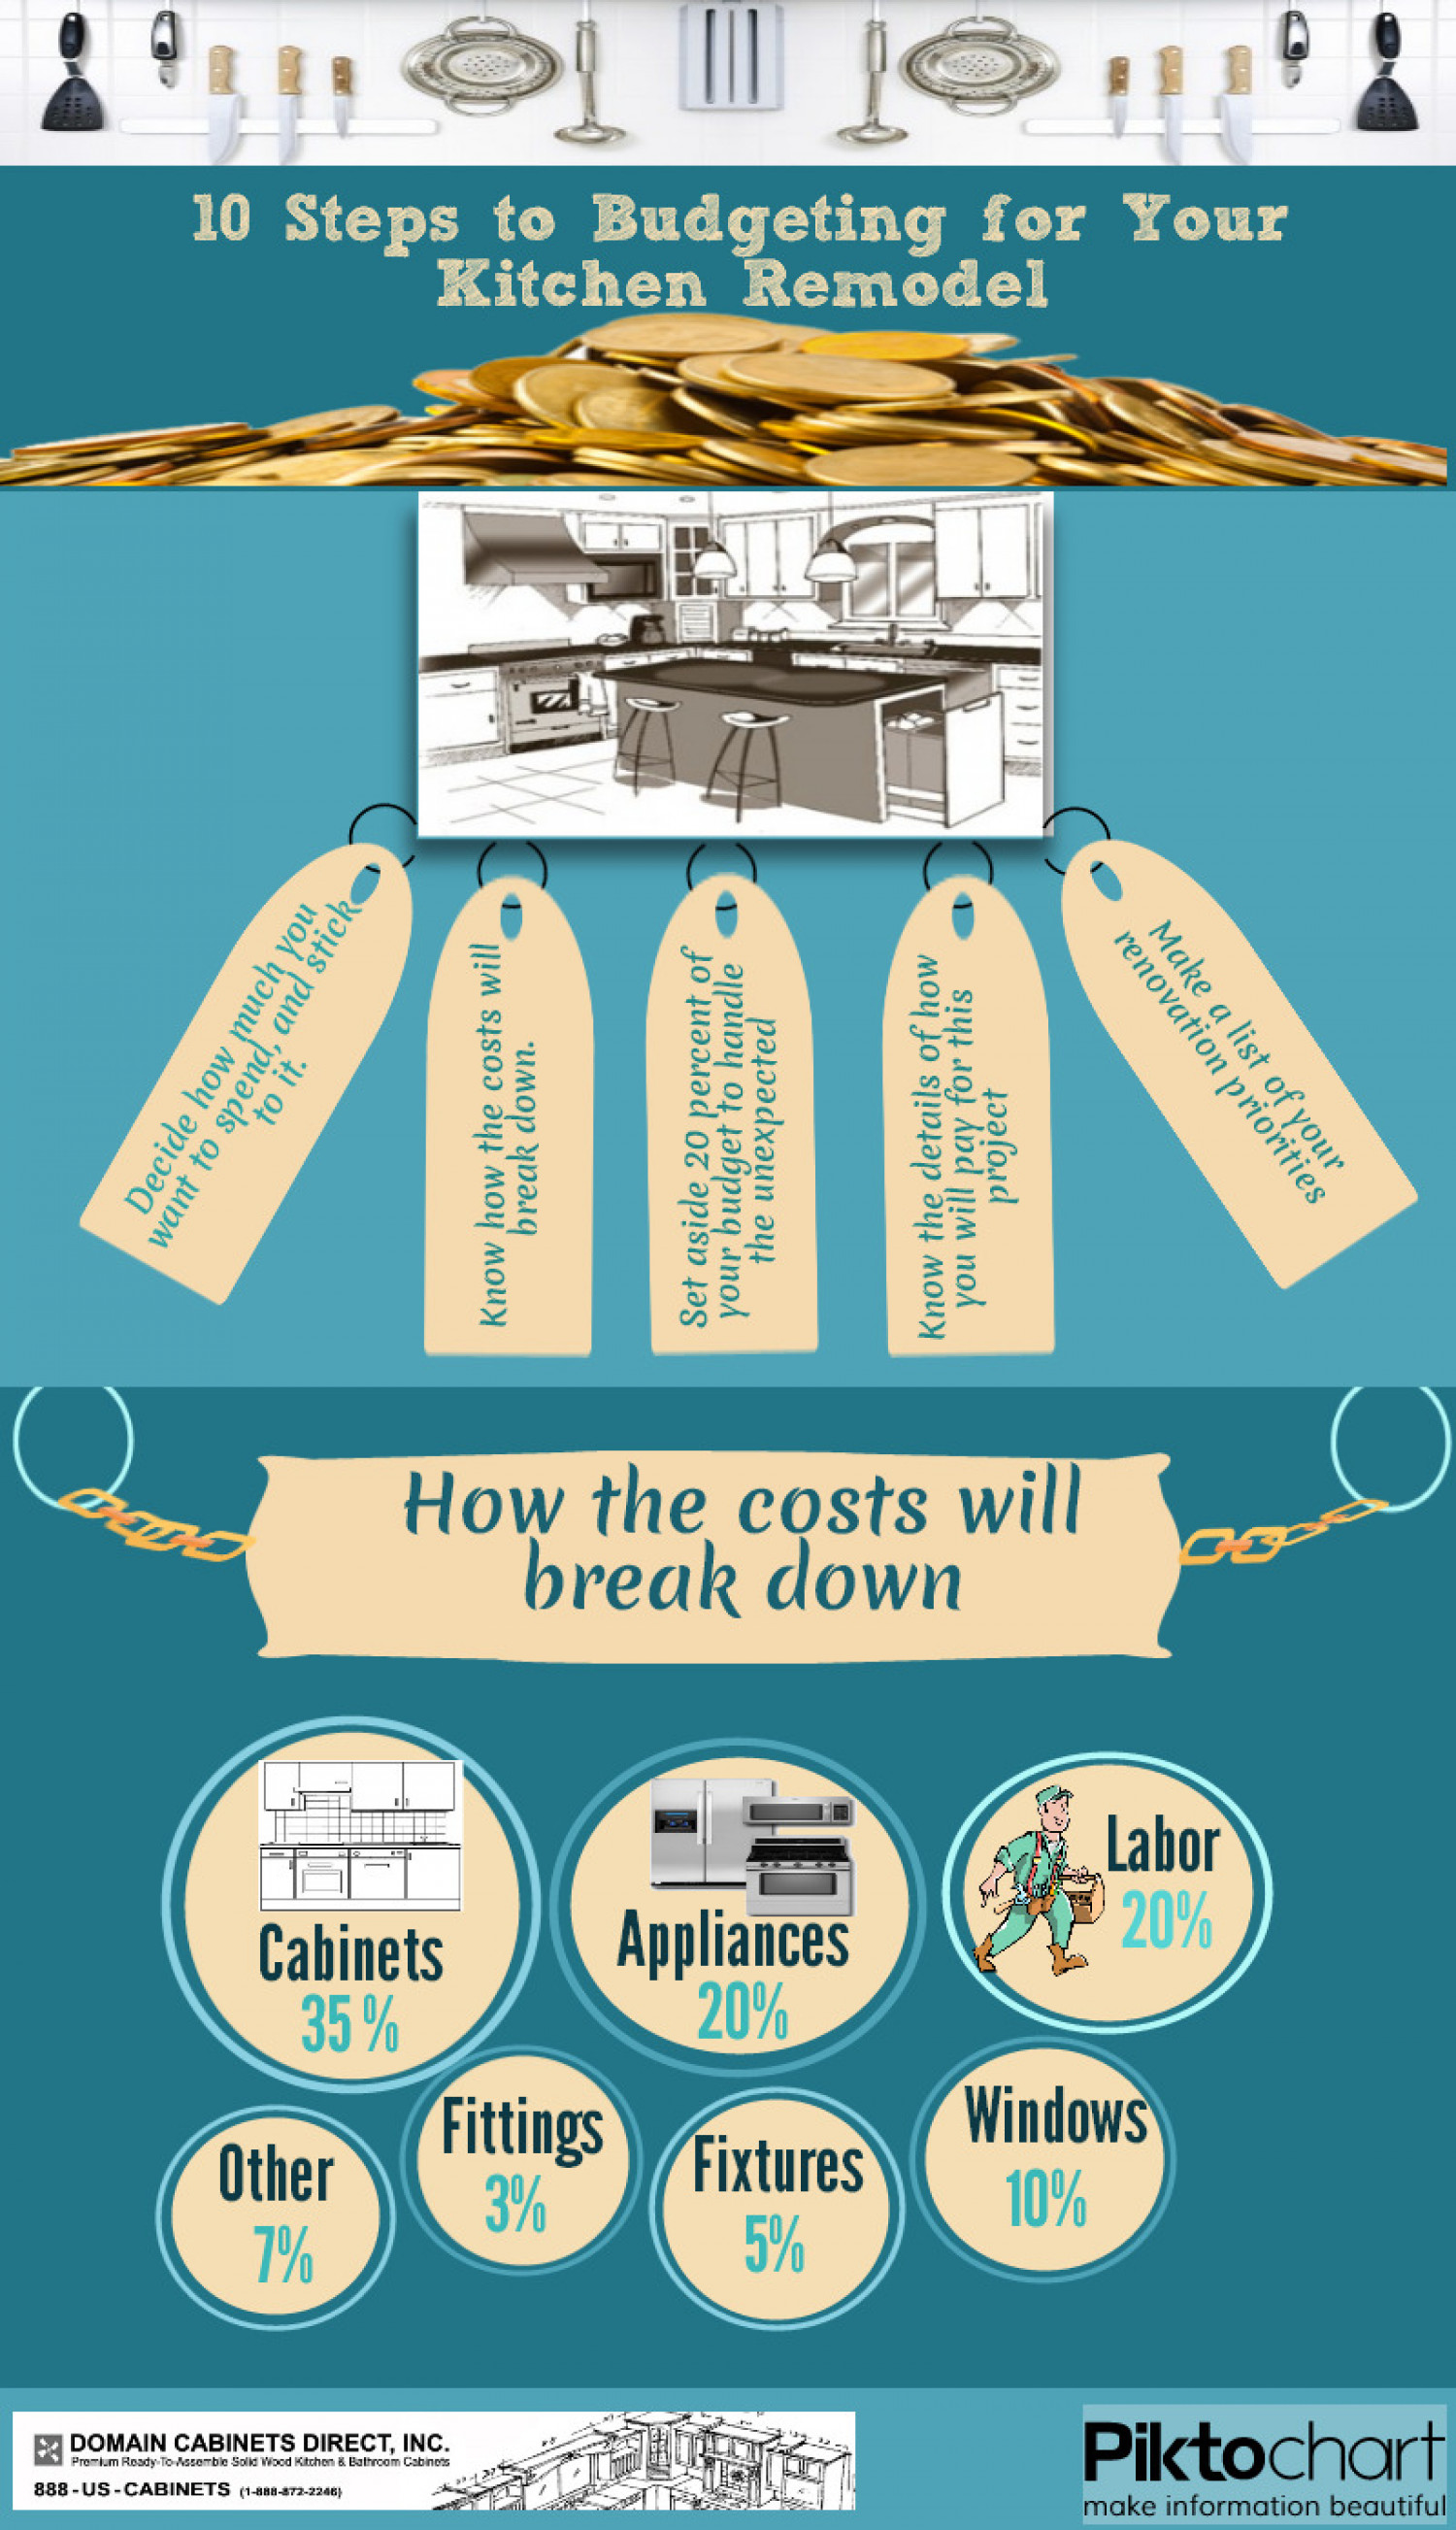 10 Steps Budgeting for Your Kitchen Remodel | Visual.ly